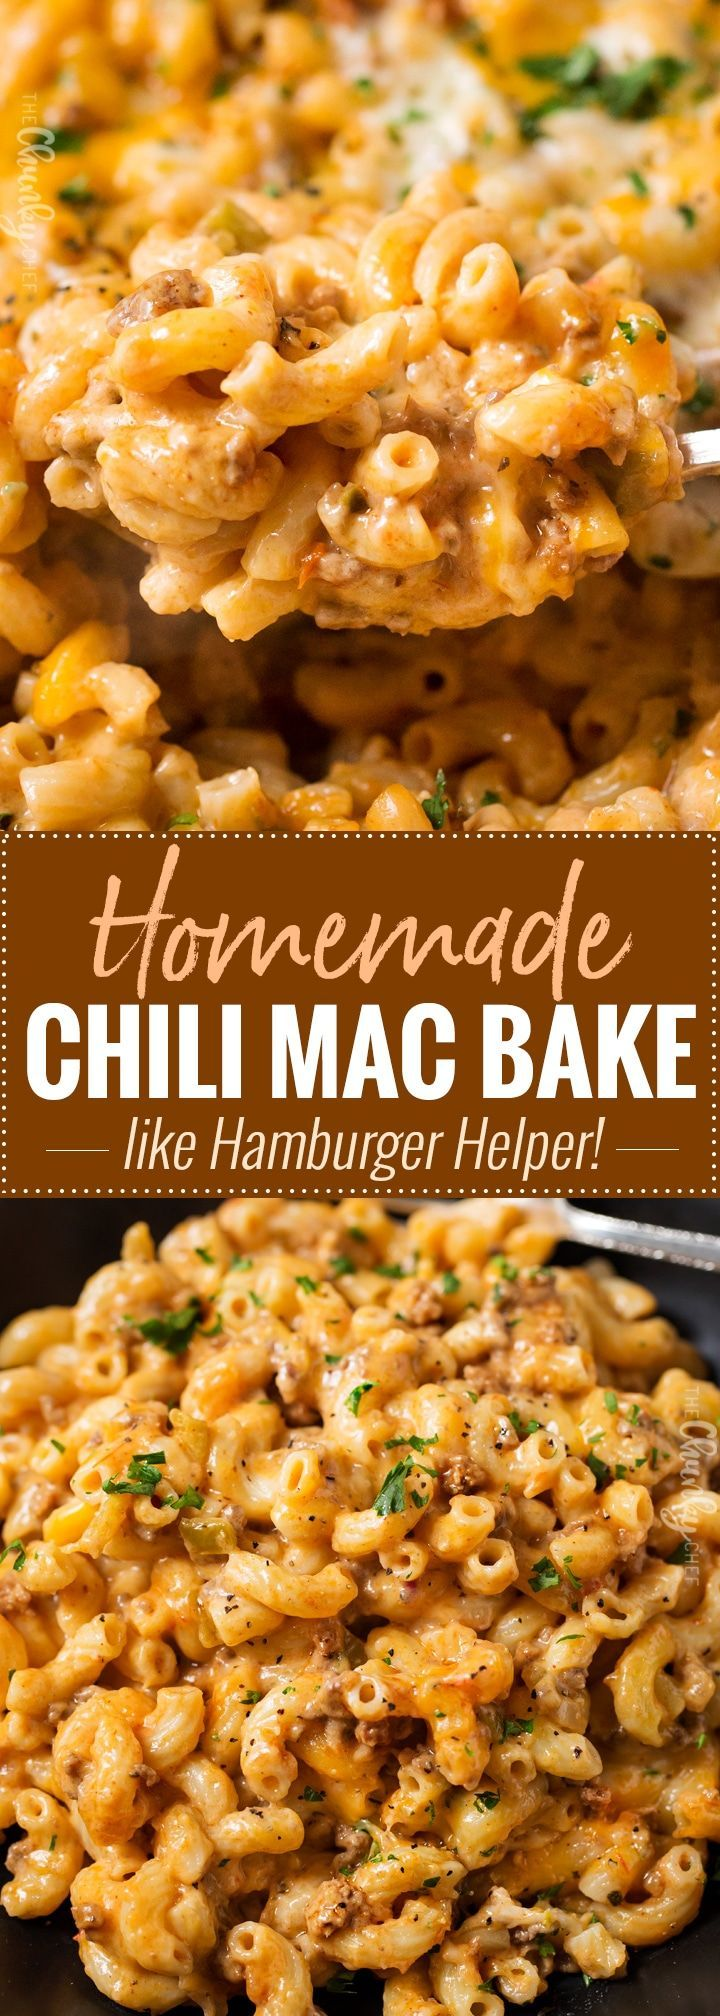 Homemade Chili Mac Bake | Hearty, cheesy, and comfort food the whole family will love! Perfect for a busy weeknight, and leftovers are just as amazing! | http://thechunkychef.com